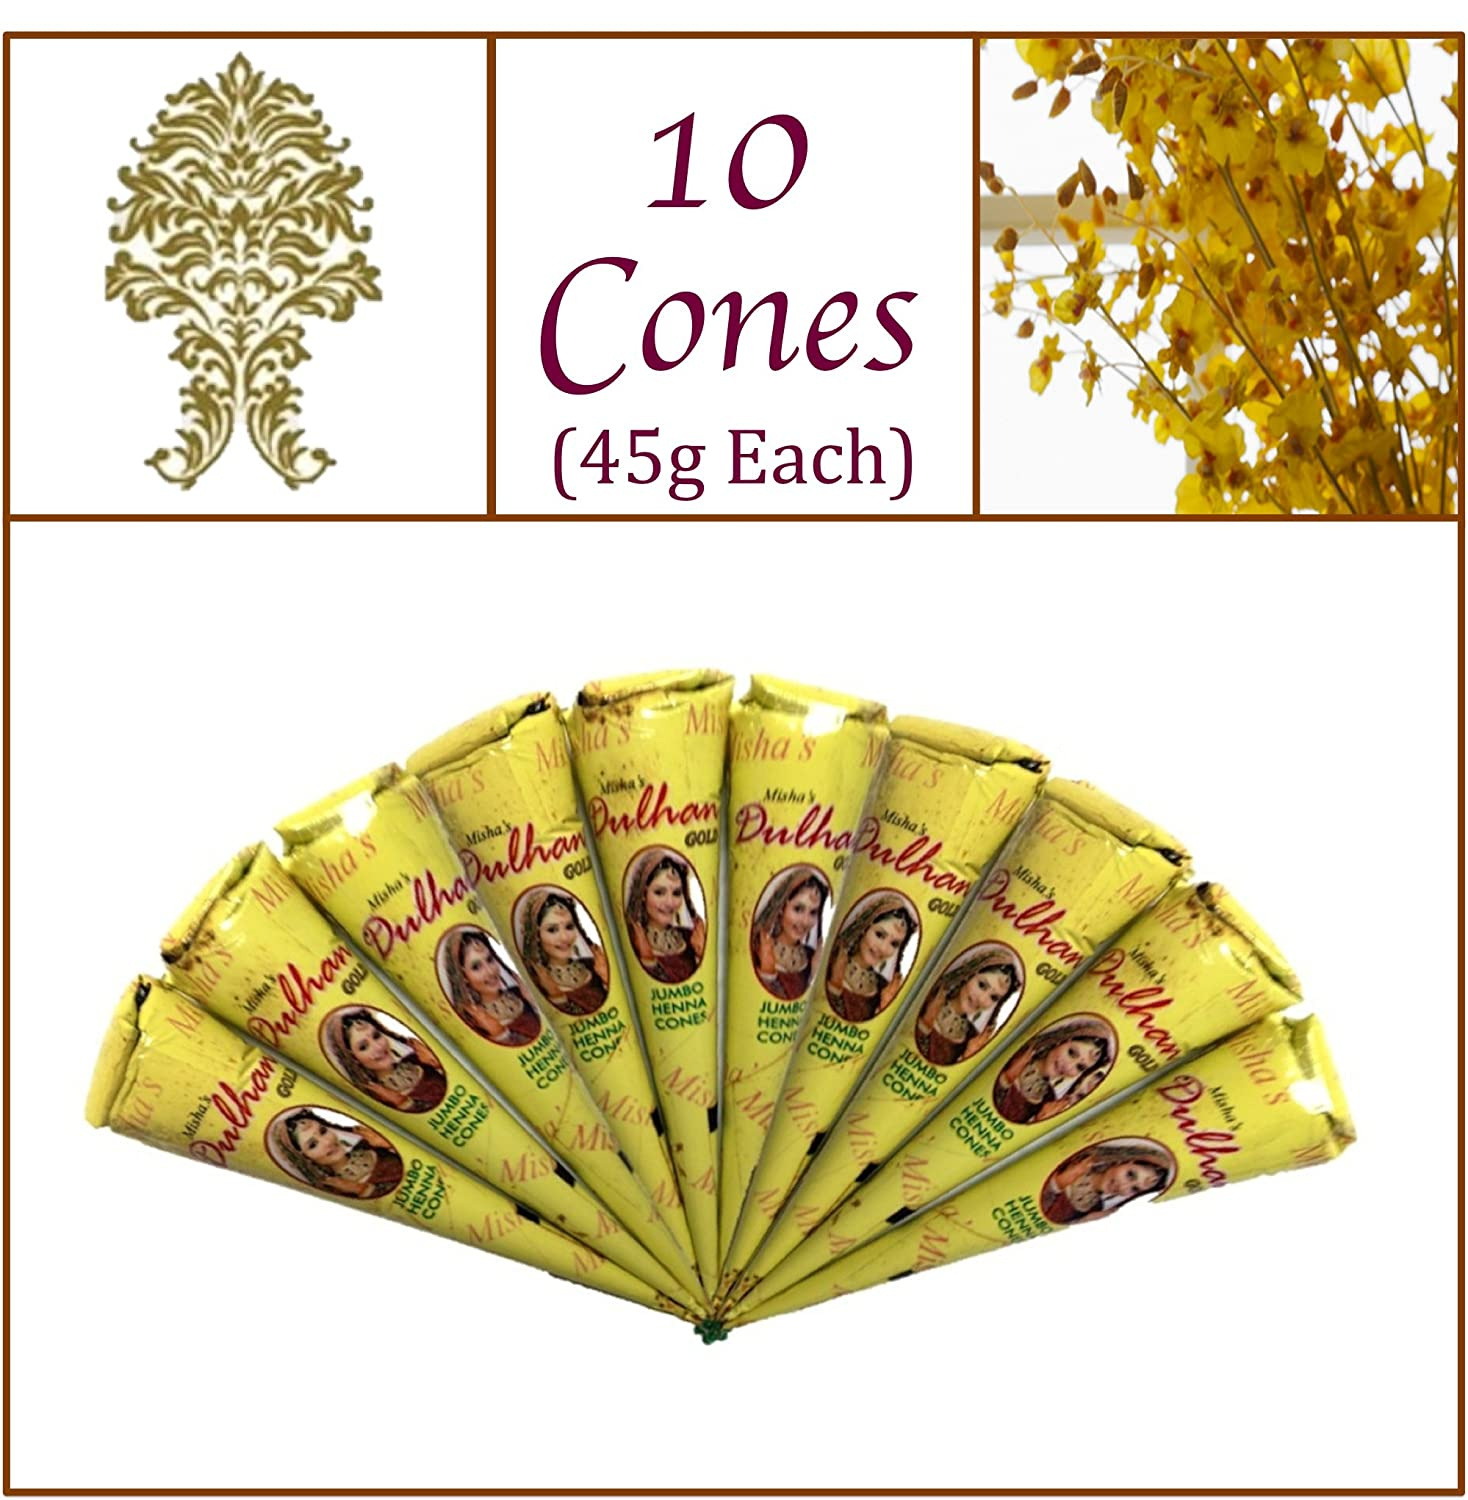 10 Jumbo Cones. Dulhan Gold Henna Paste. No Chemicals No PPD. 45g Ea. Misha